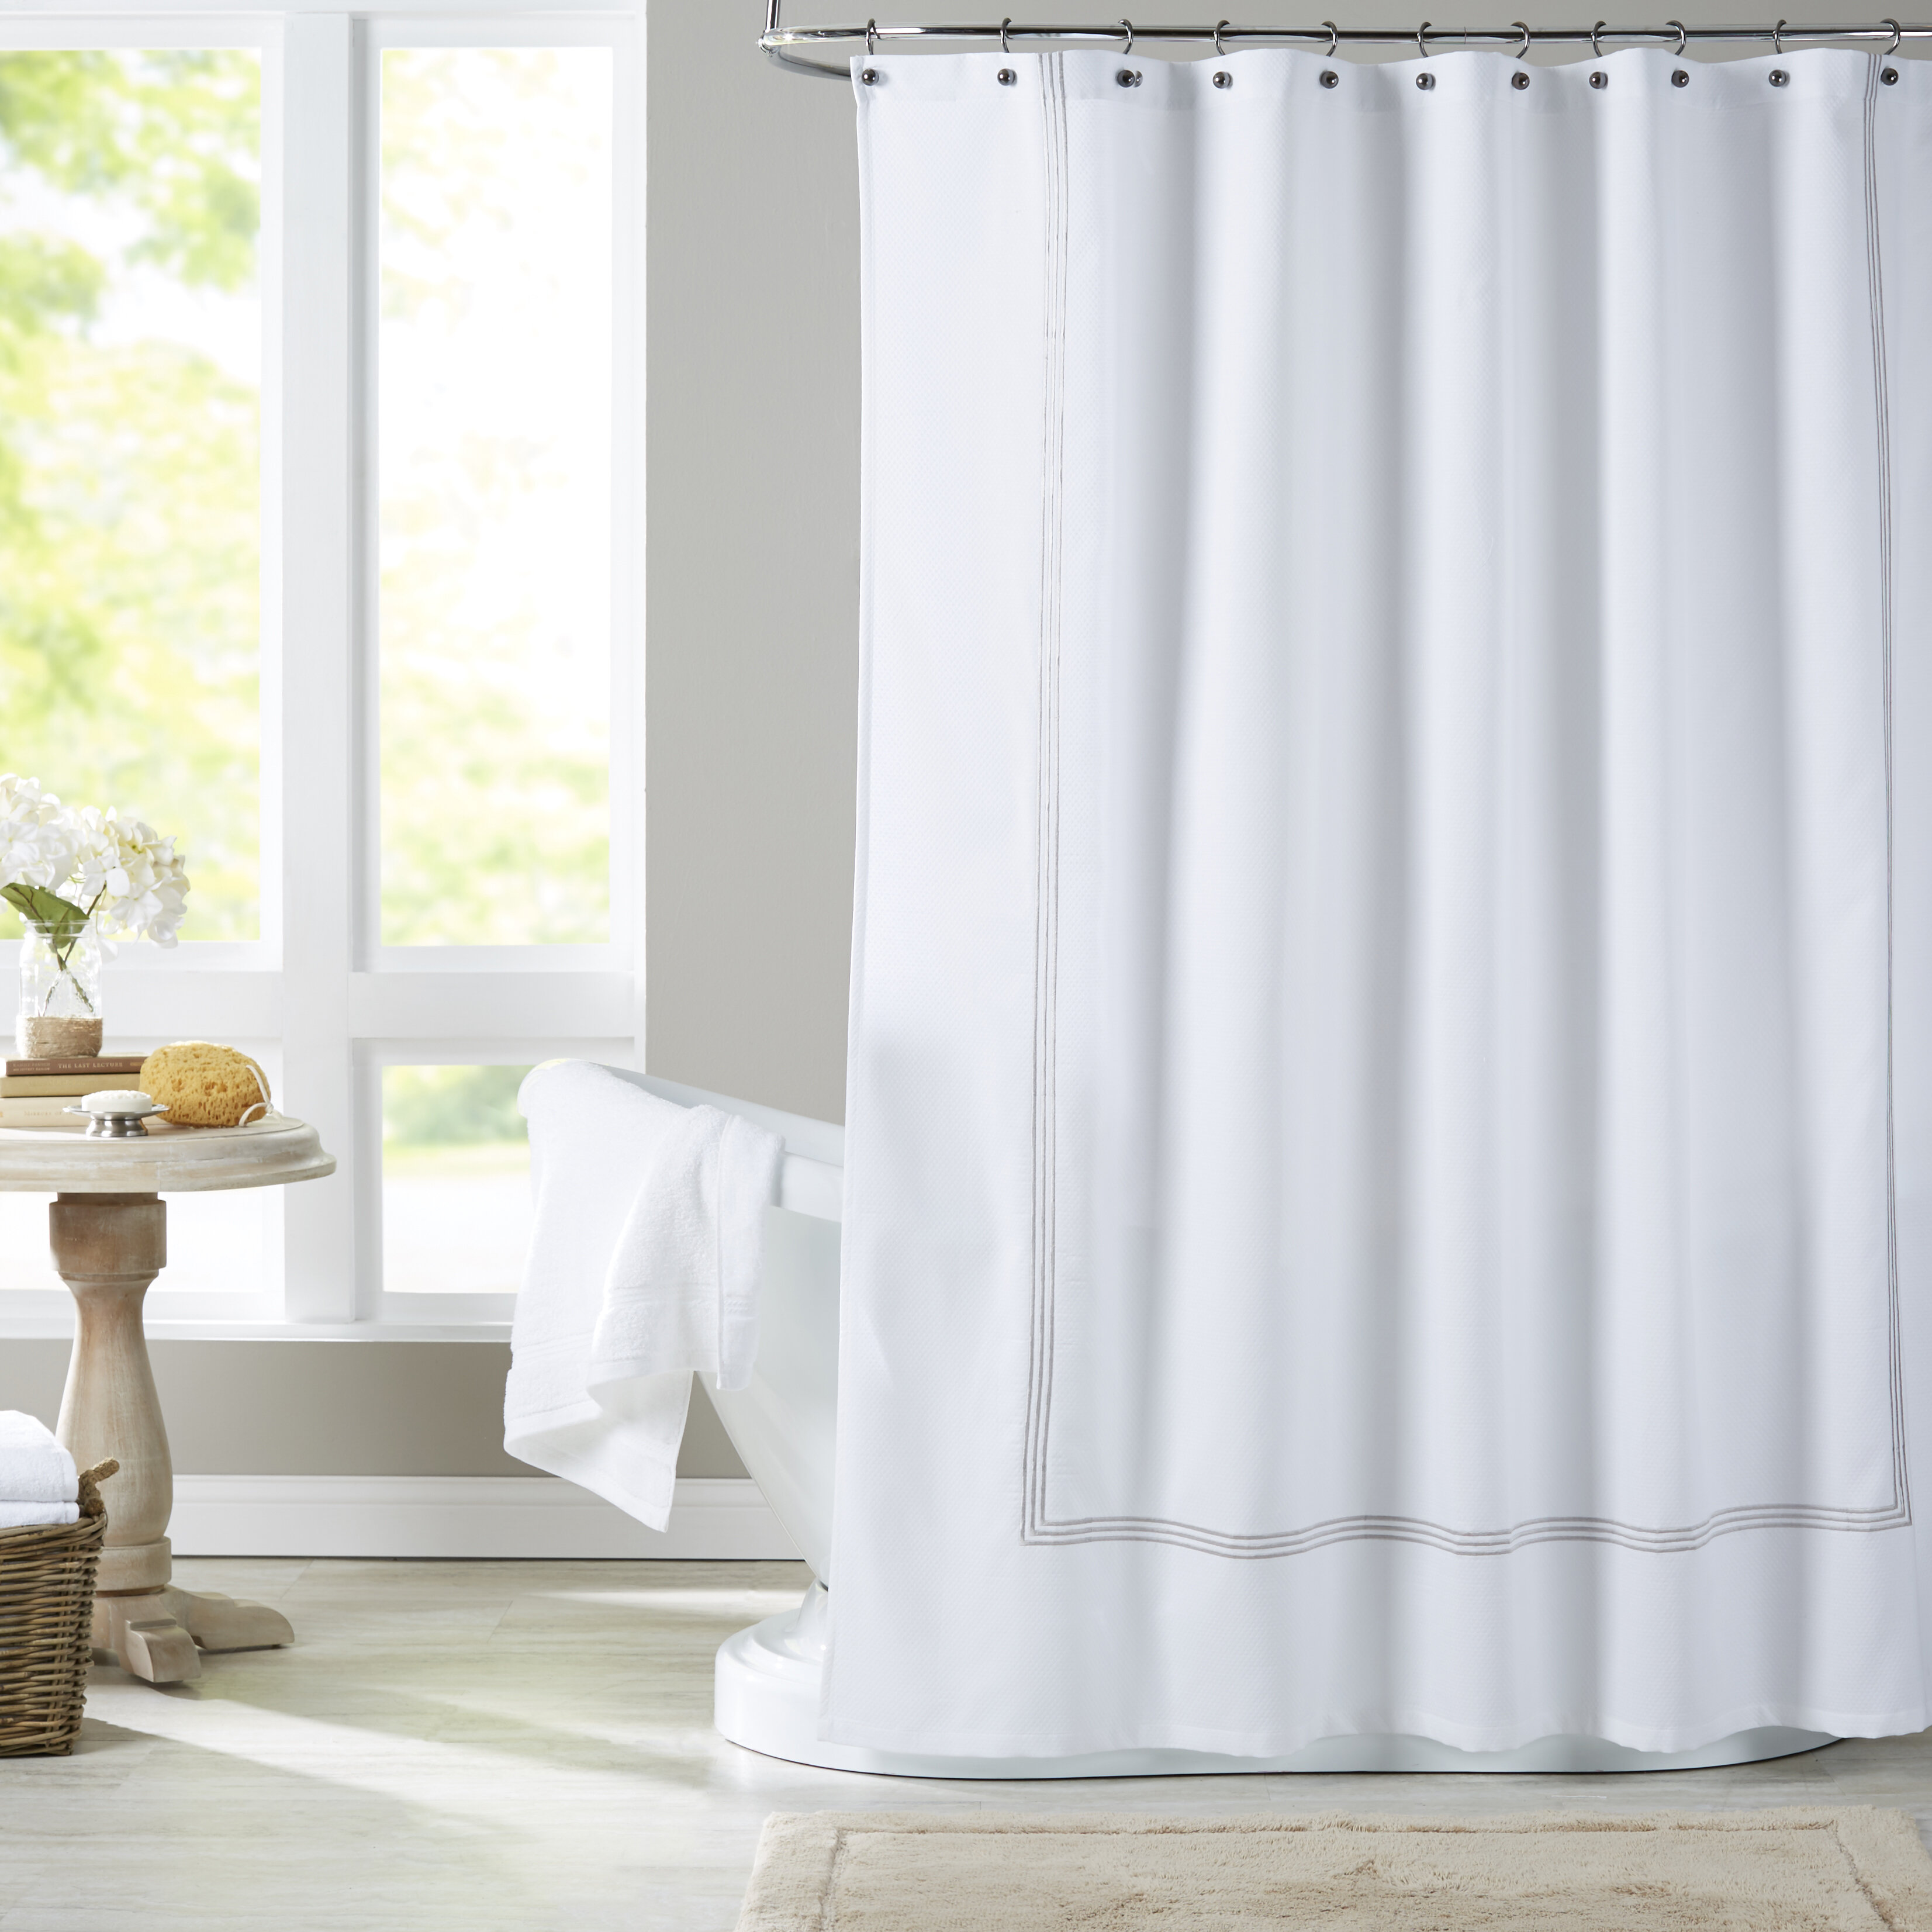 rod extra curtain for on navy wonderful with in decor awesome standard straight long liner wall lavender iron sho bathroom shower target hookless curtains design blue size silver ideas